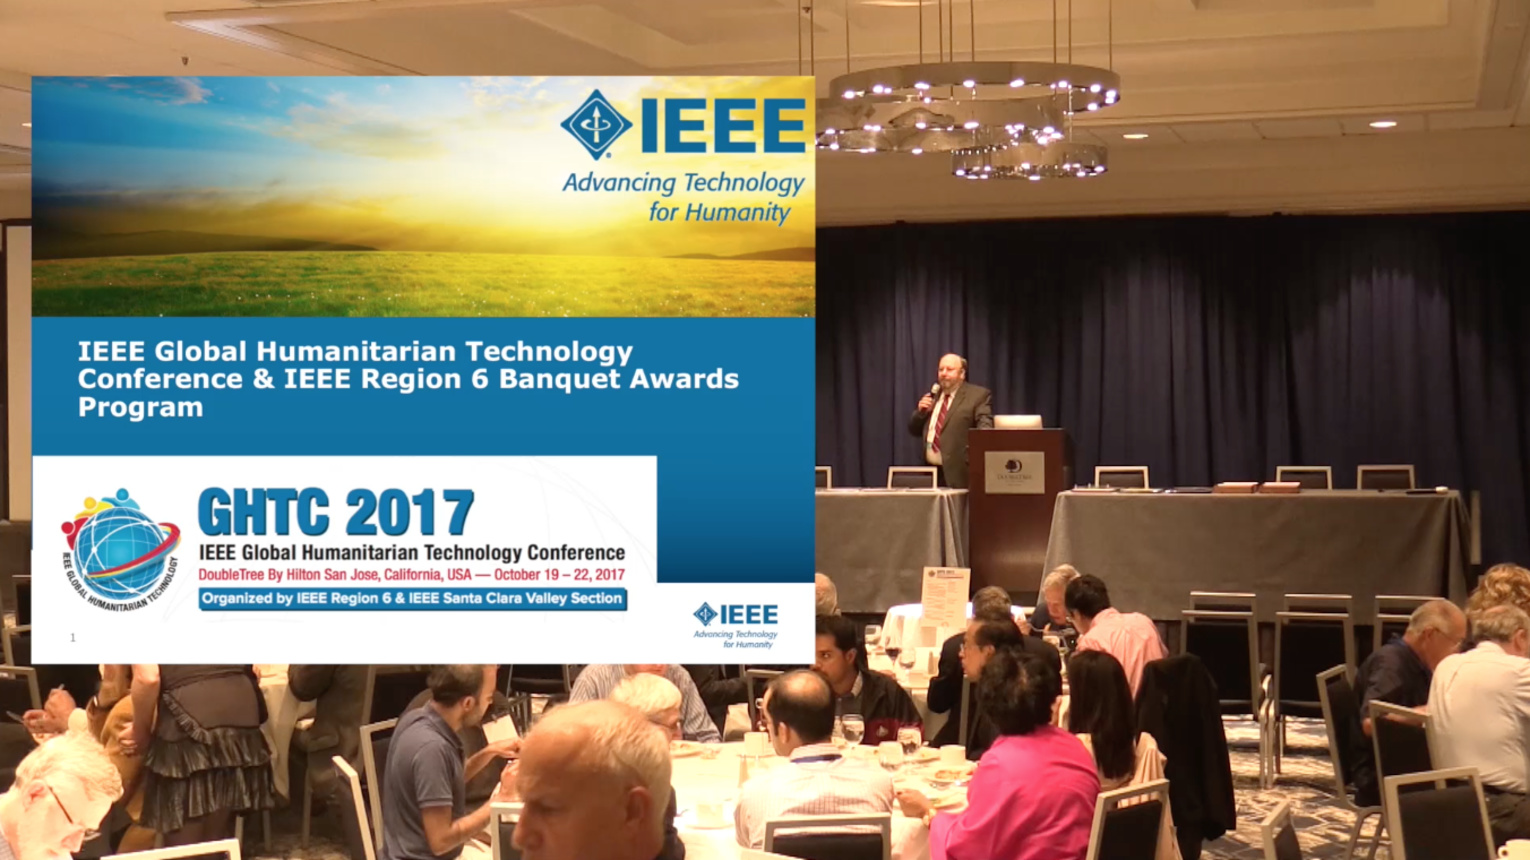 Awards Program - Global Humanitarian Technology Conference, GHTC 2017